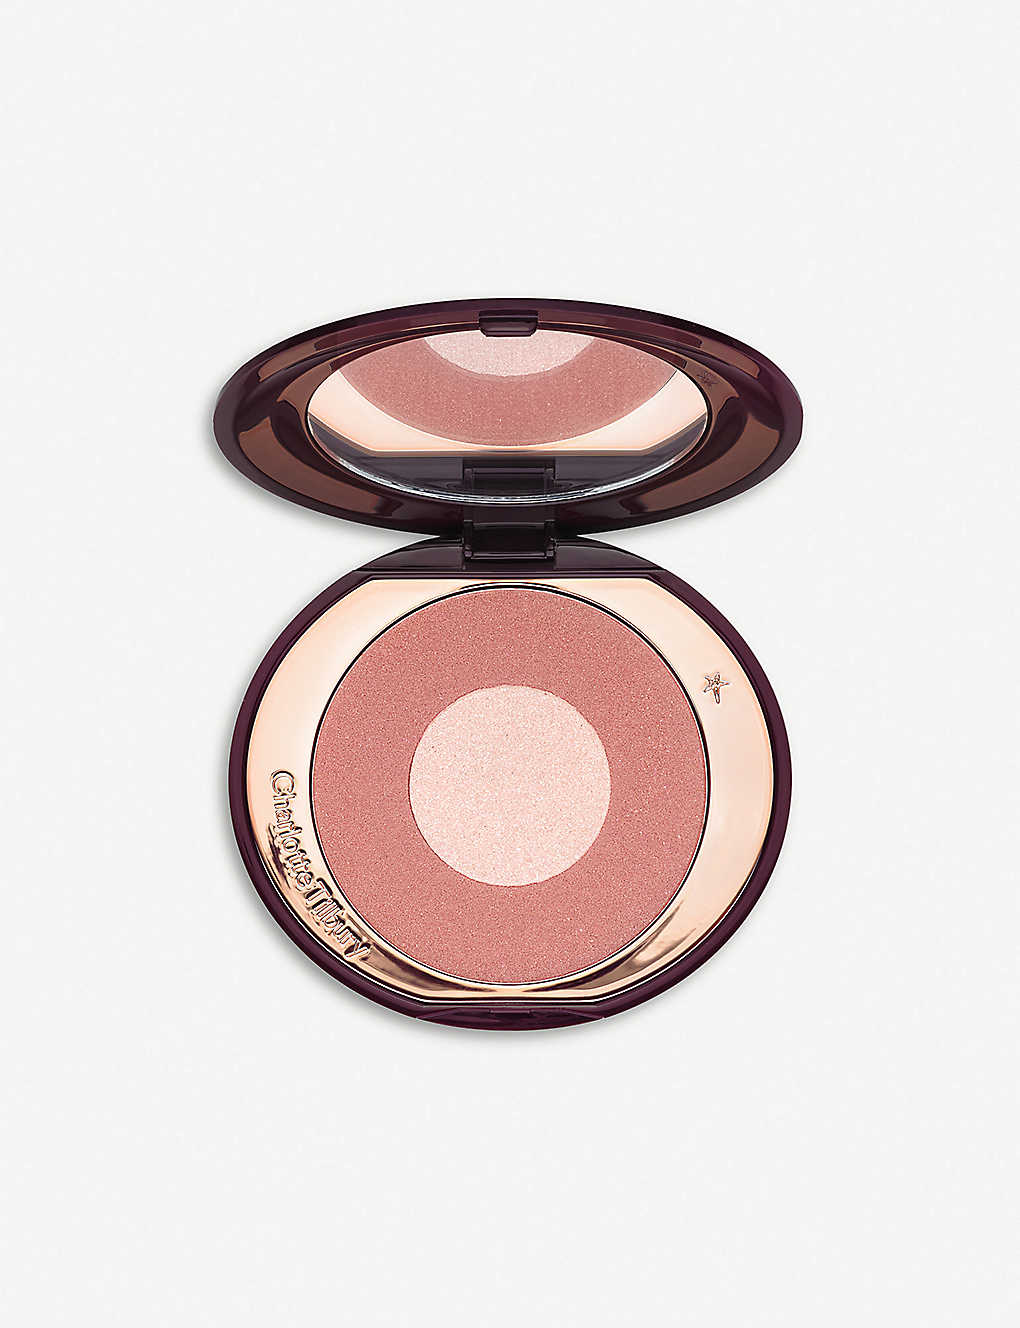 Cheek to Chic Pillow Talk Blusher - Pillowtalk